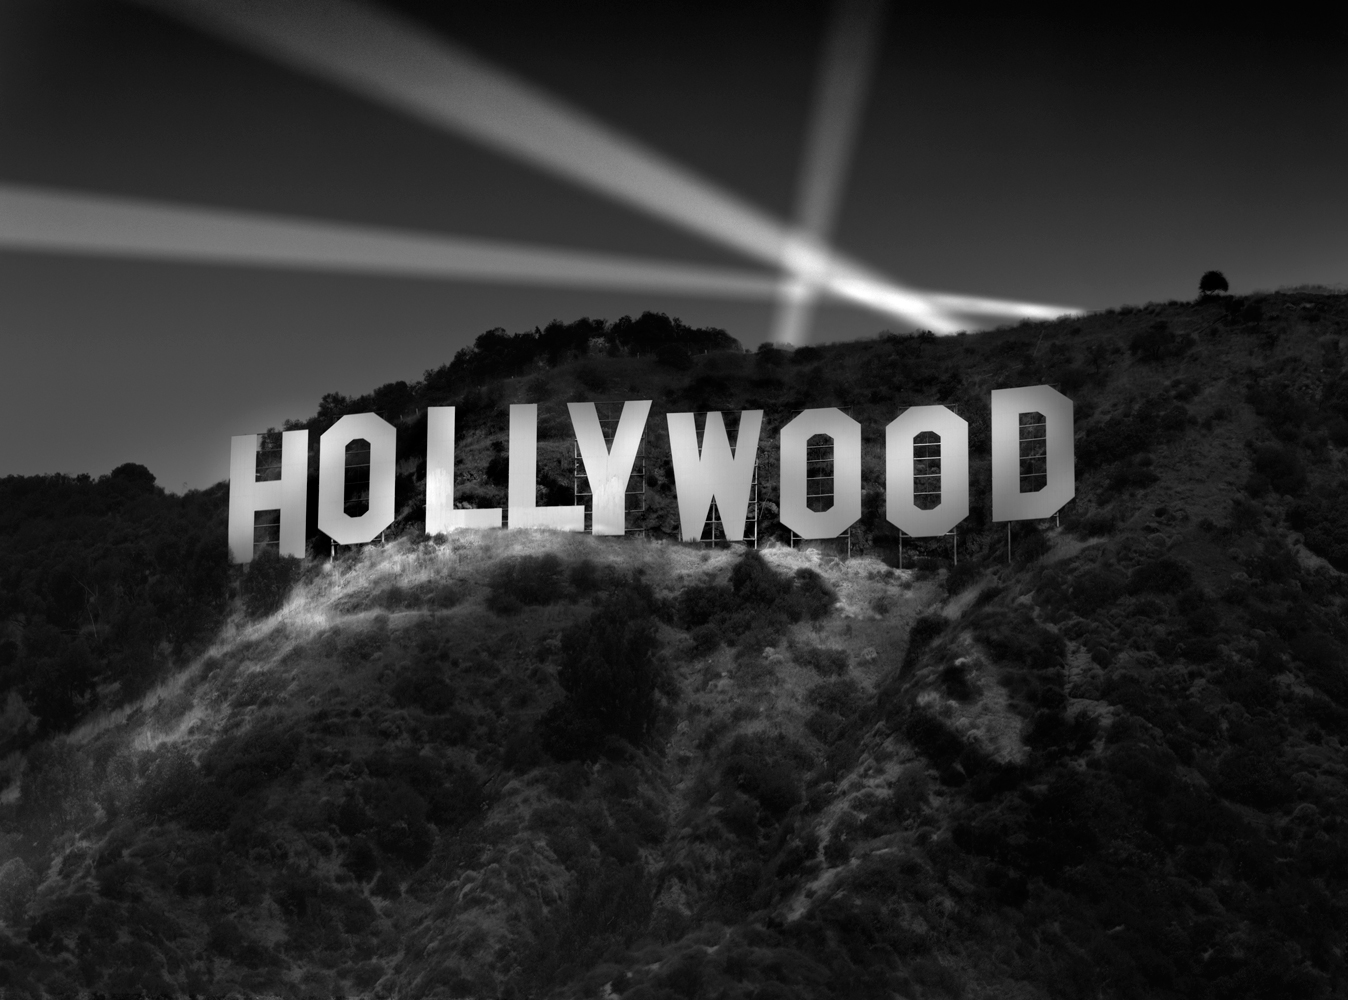 Richard Lund's Photo of the Hollywood Sign At Night